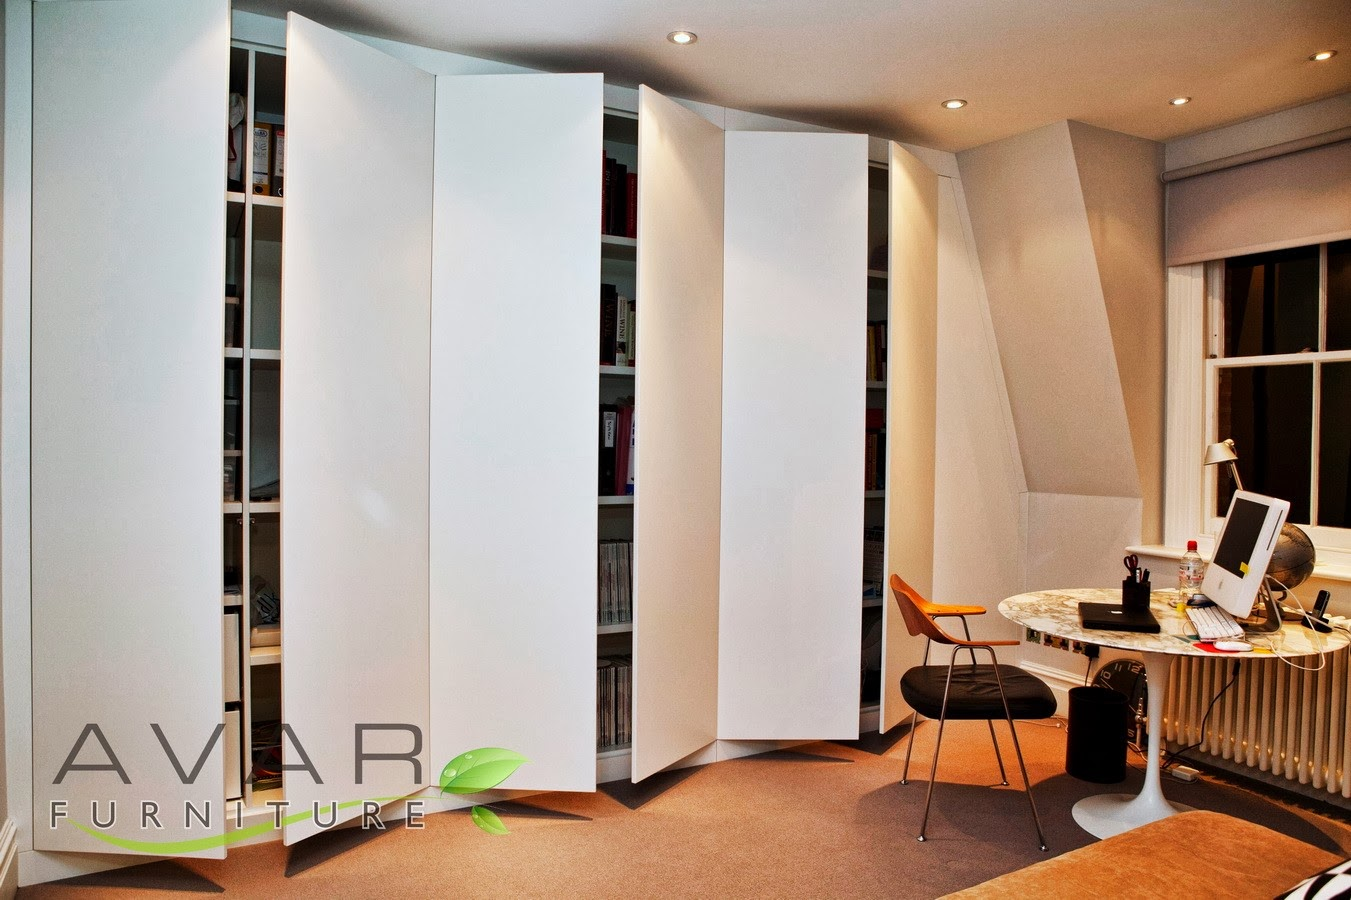 Chic ... Naturals Fitted Wardrobes Sliding Wardrobe Doors Furniture First ... wickes fitted bedrooms